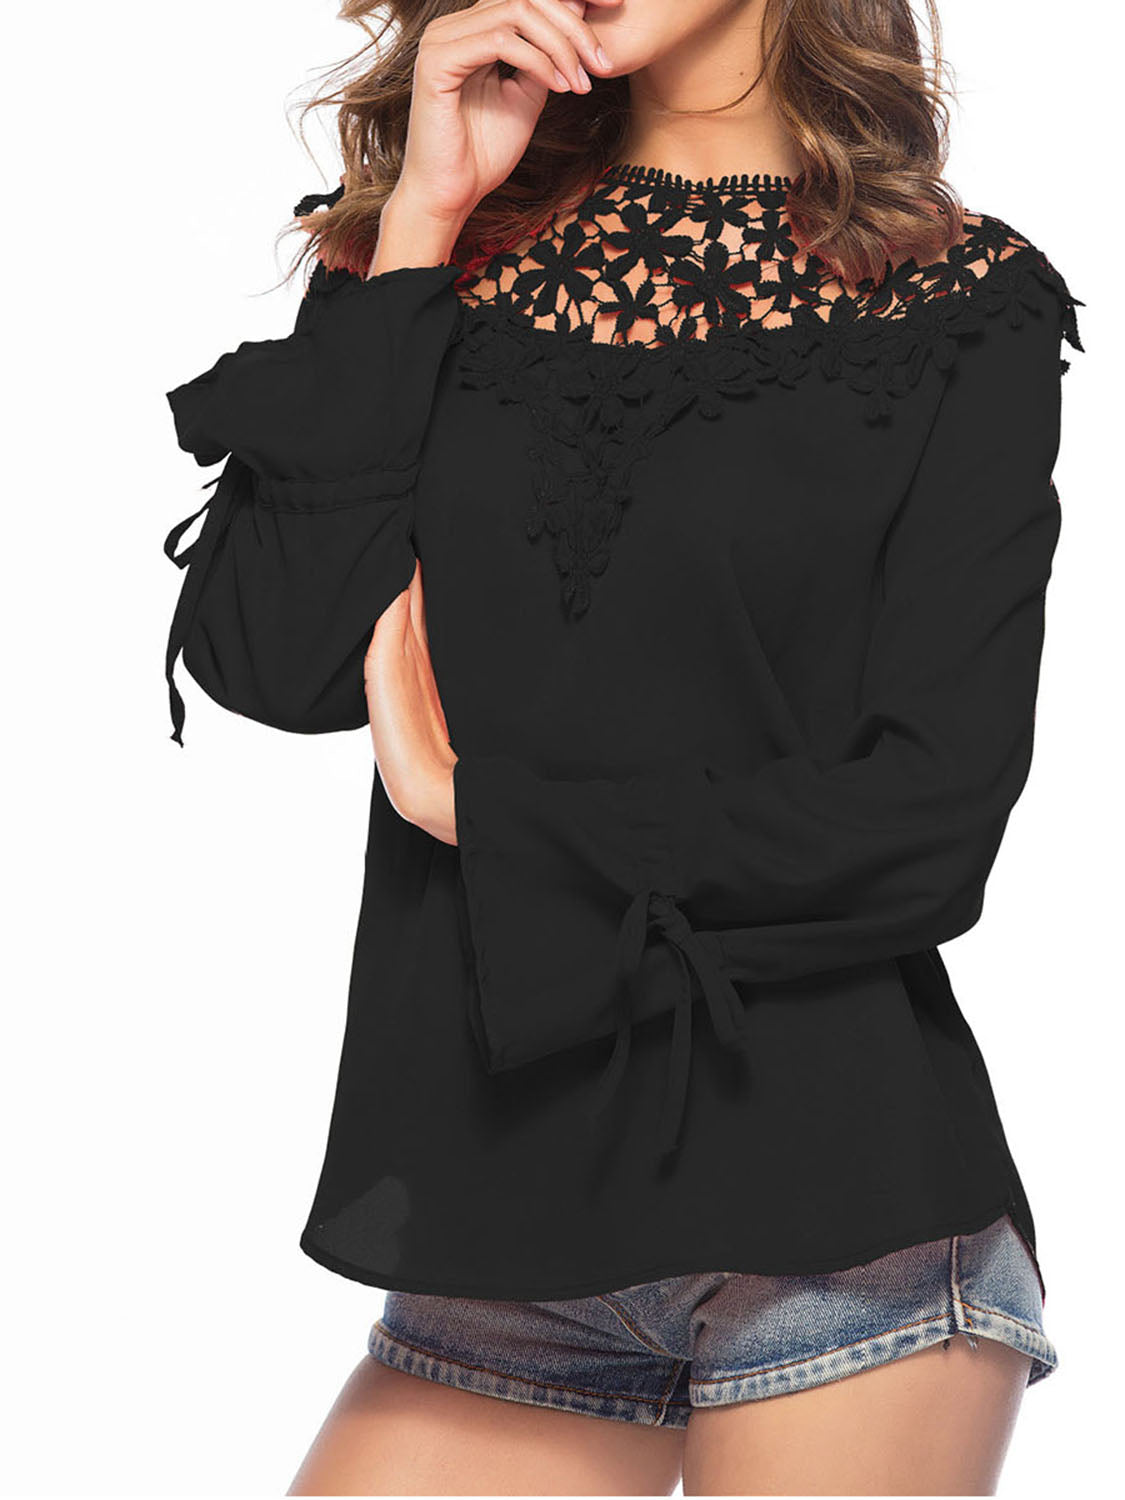 Black Chiffon Cut Out Detail Lace Panel Long Sleeve Women Blouse